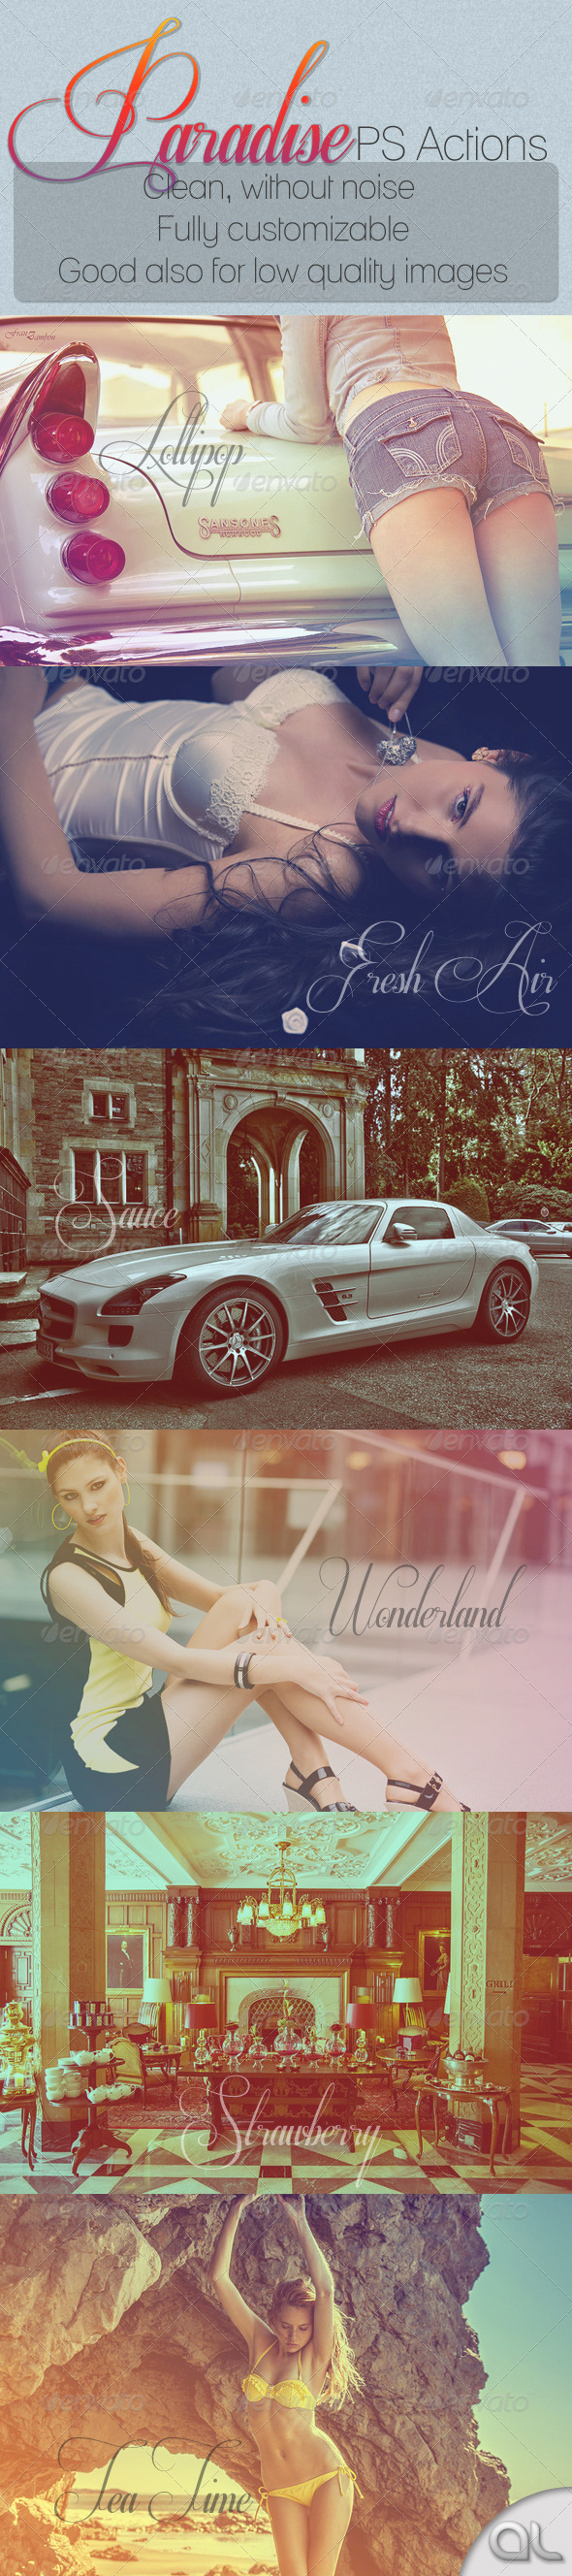 GraphicRiver Paradise PS Actions 2582277